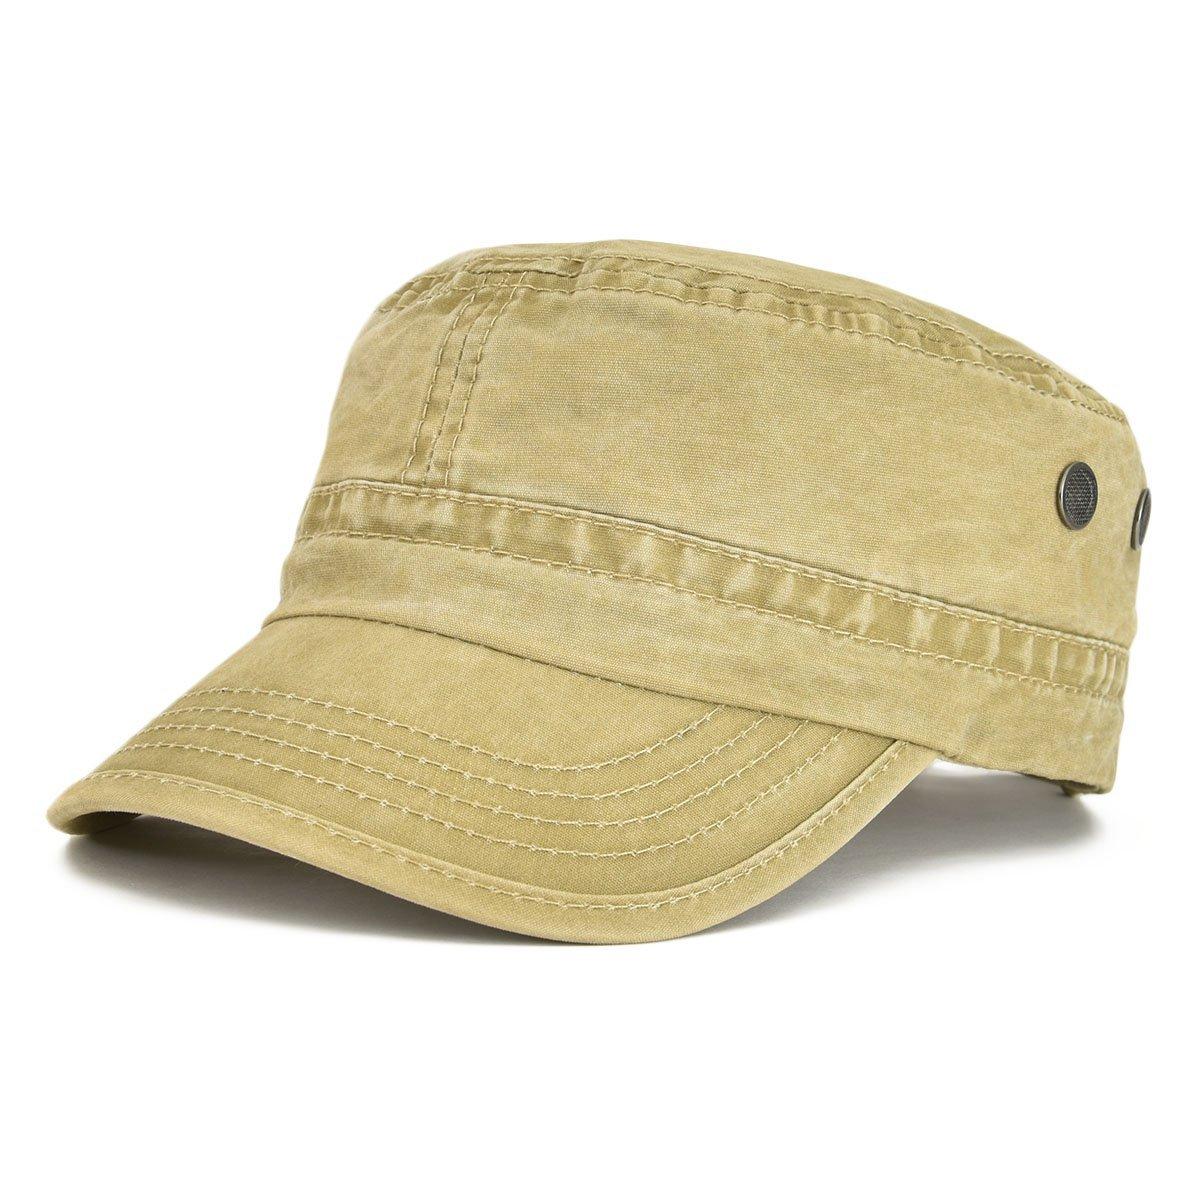 Custom Military Style Caps-China cap Suppliers-Capmfrs